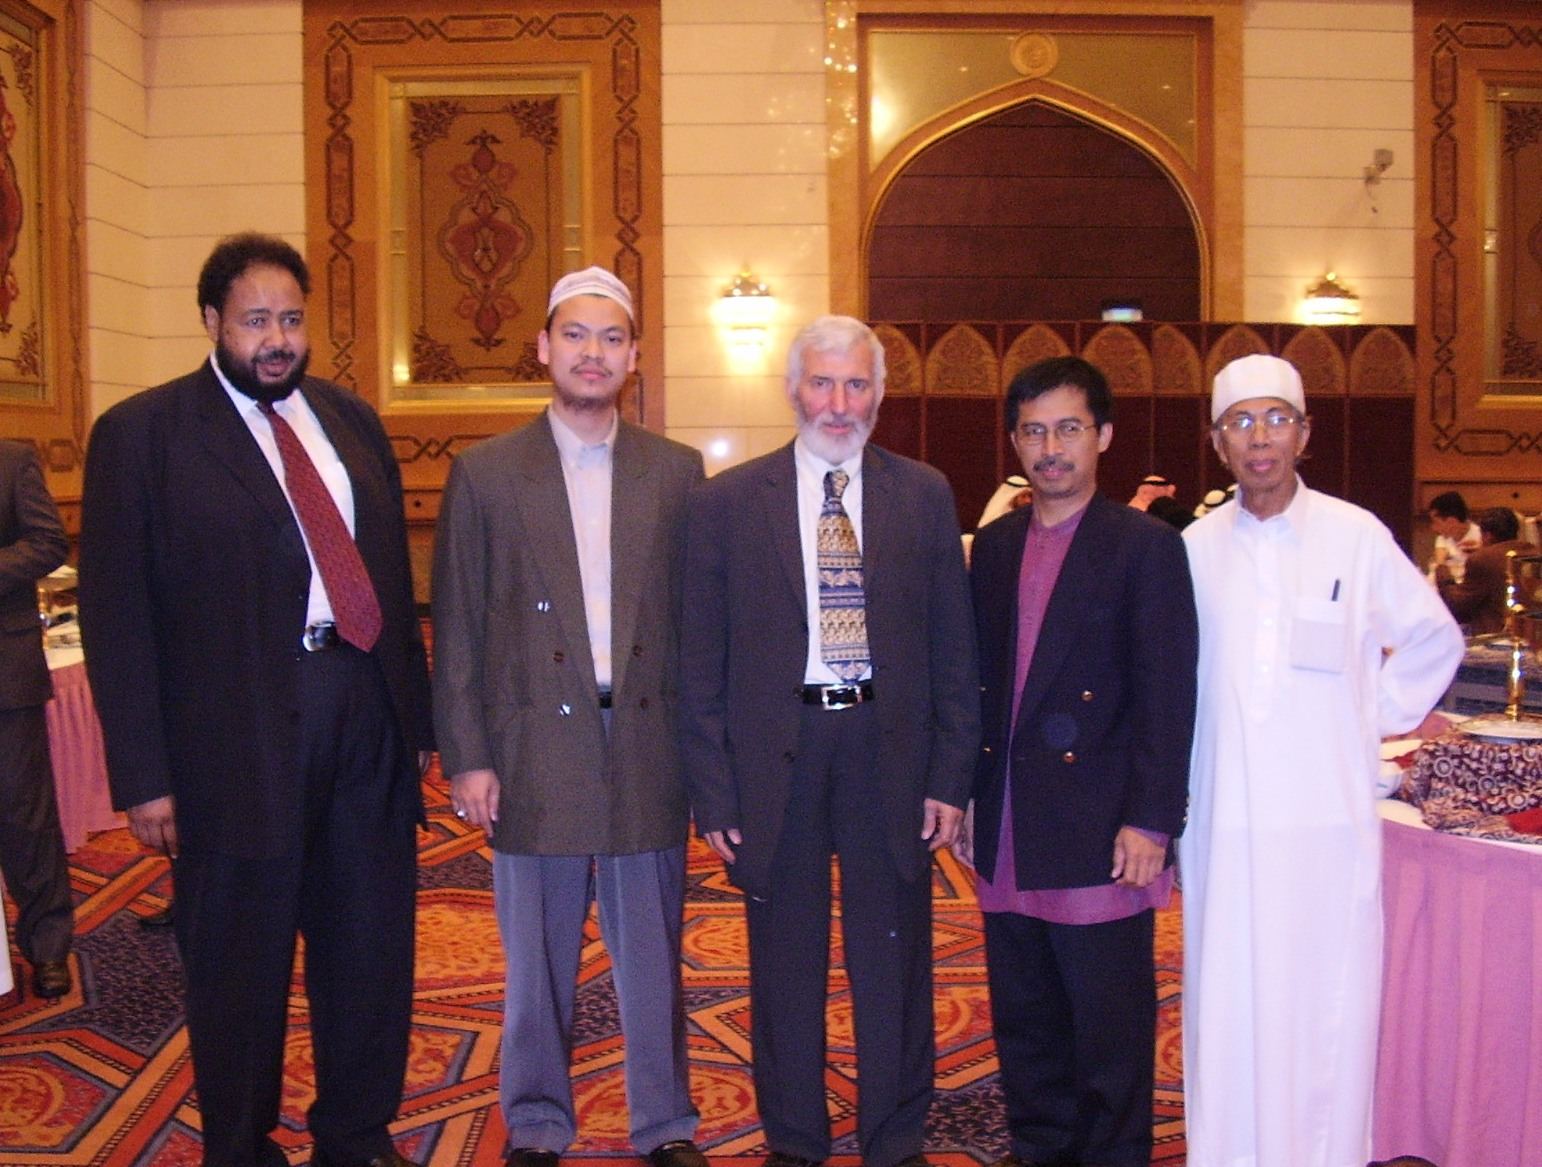 Me and Syeikh Dr Abd Sattar Abu Ghuddah (in the  Middle) at Dallah AlBarakah Conference on Oct 2005